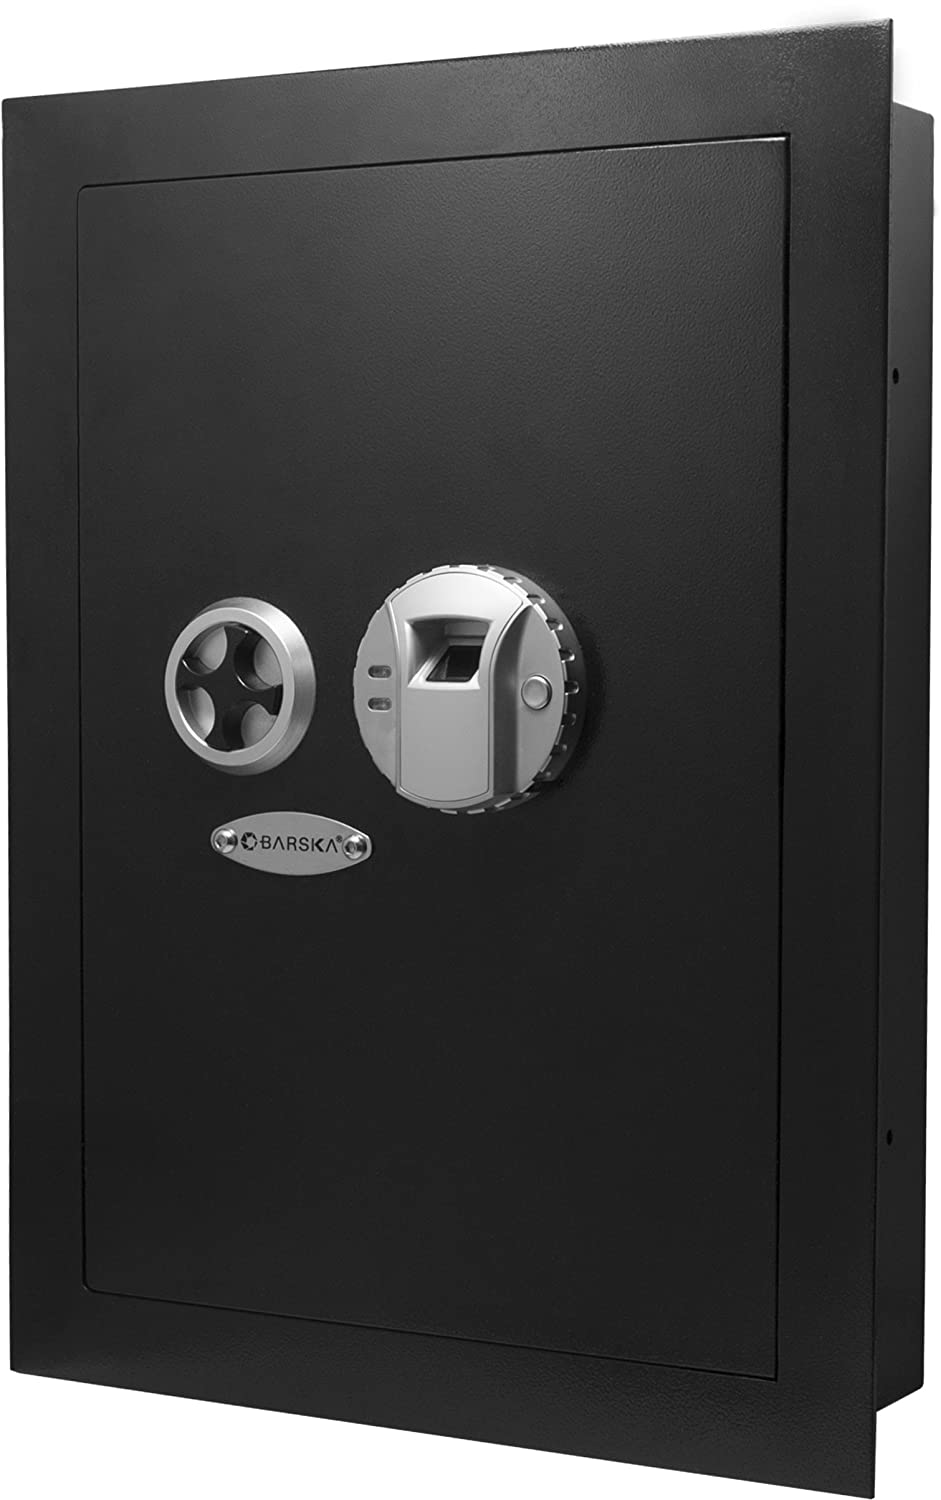 7. BARSKA AX12038 Biometric Wall Safe